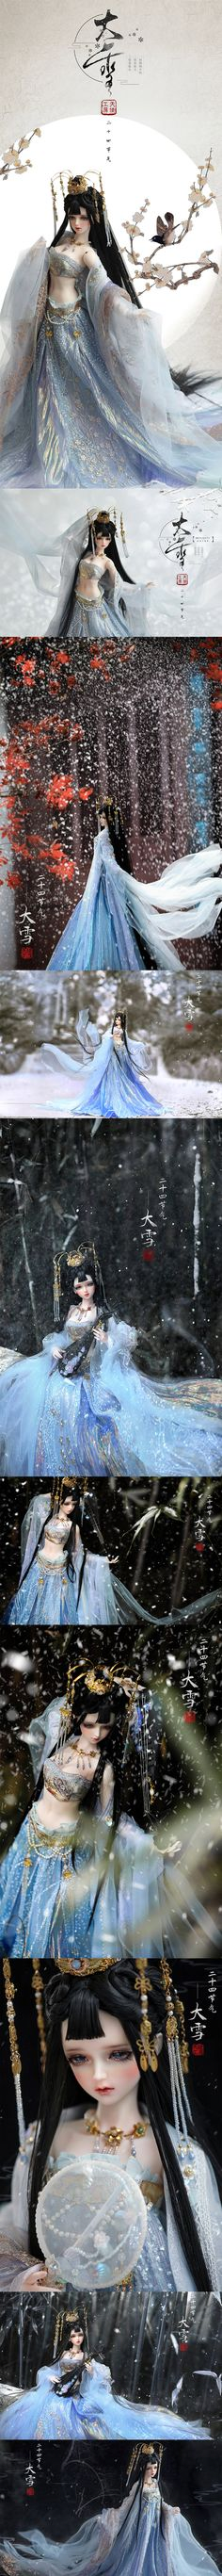 (AS Agency)Time Limited BJD Snow Girl 58cm Ball-Jointed Doll_SD size doll_Angell Studio_DOLL_Ball Jointed Dolls (BJD) company-Legenddoll